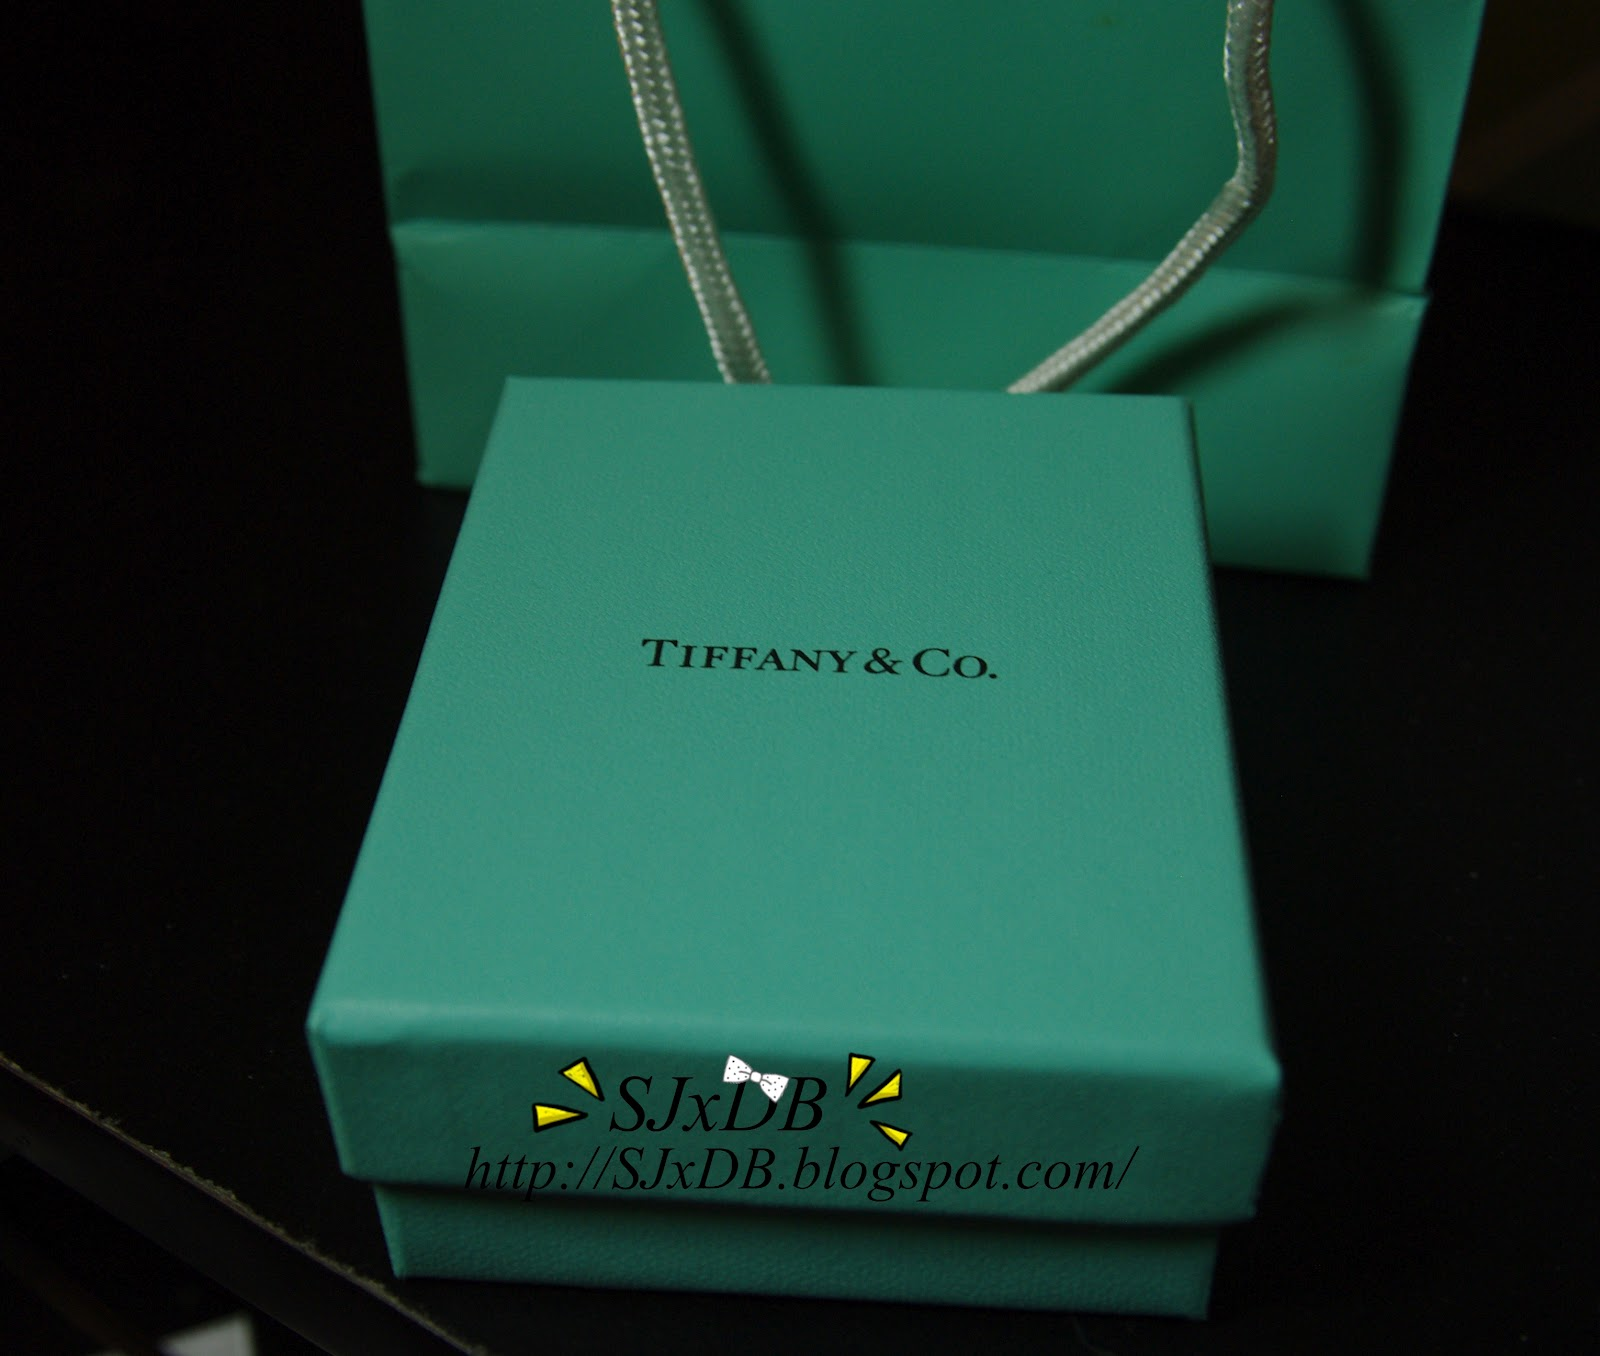 And I Got Myself An Early Birthday Gift Bought A Tiffany Charm Bracelet Yes Quite Expensive Buy But Think Its Worth It